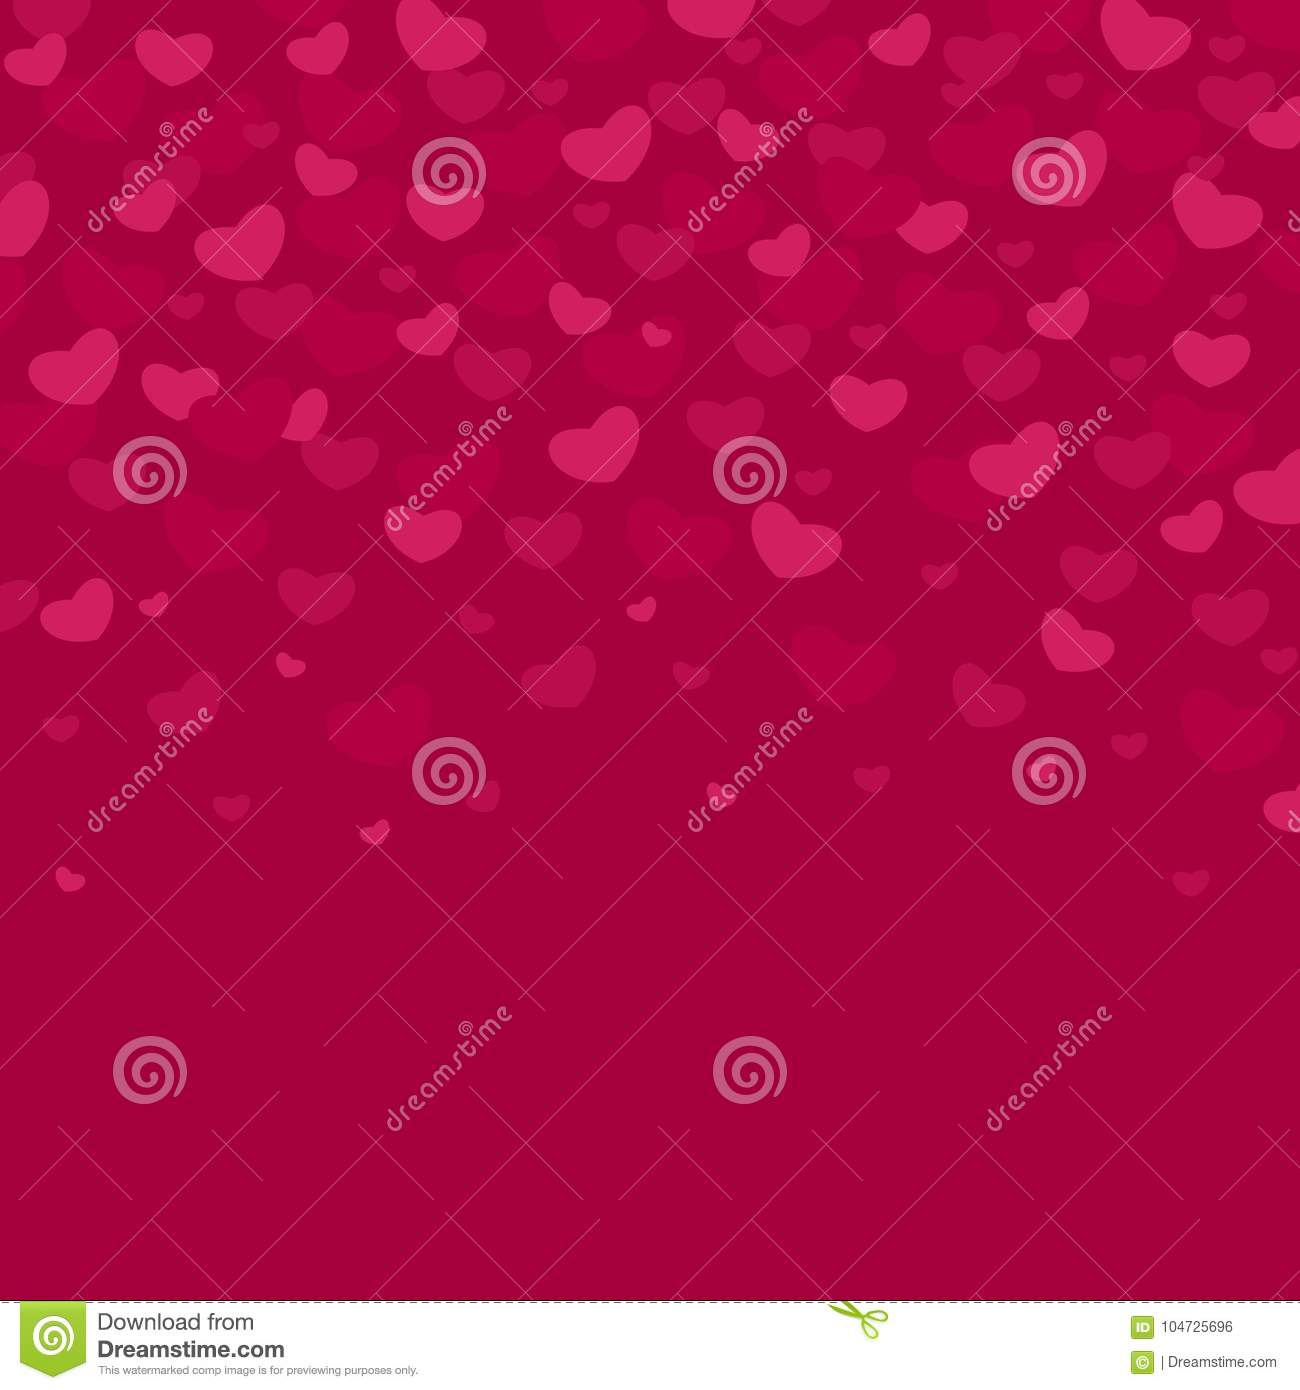 Vector Illustrated Valentines Day Patterns. Cute Tile Wedding ...